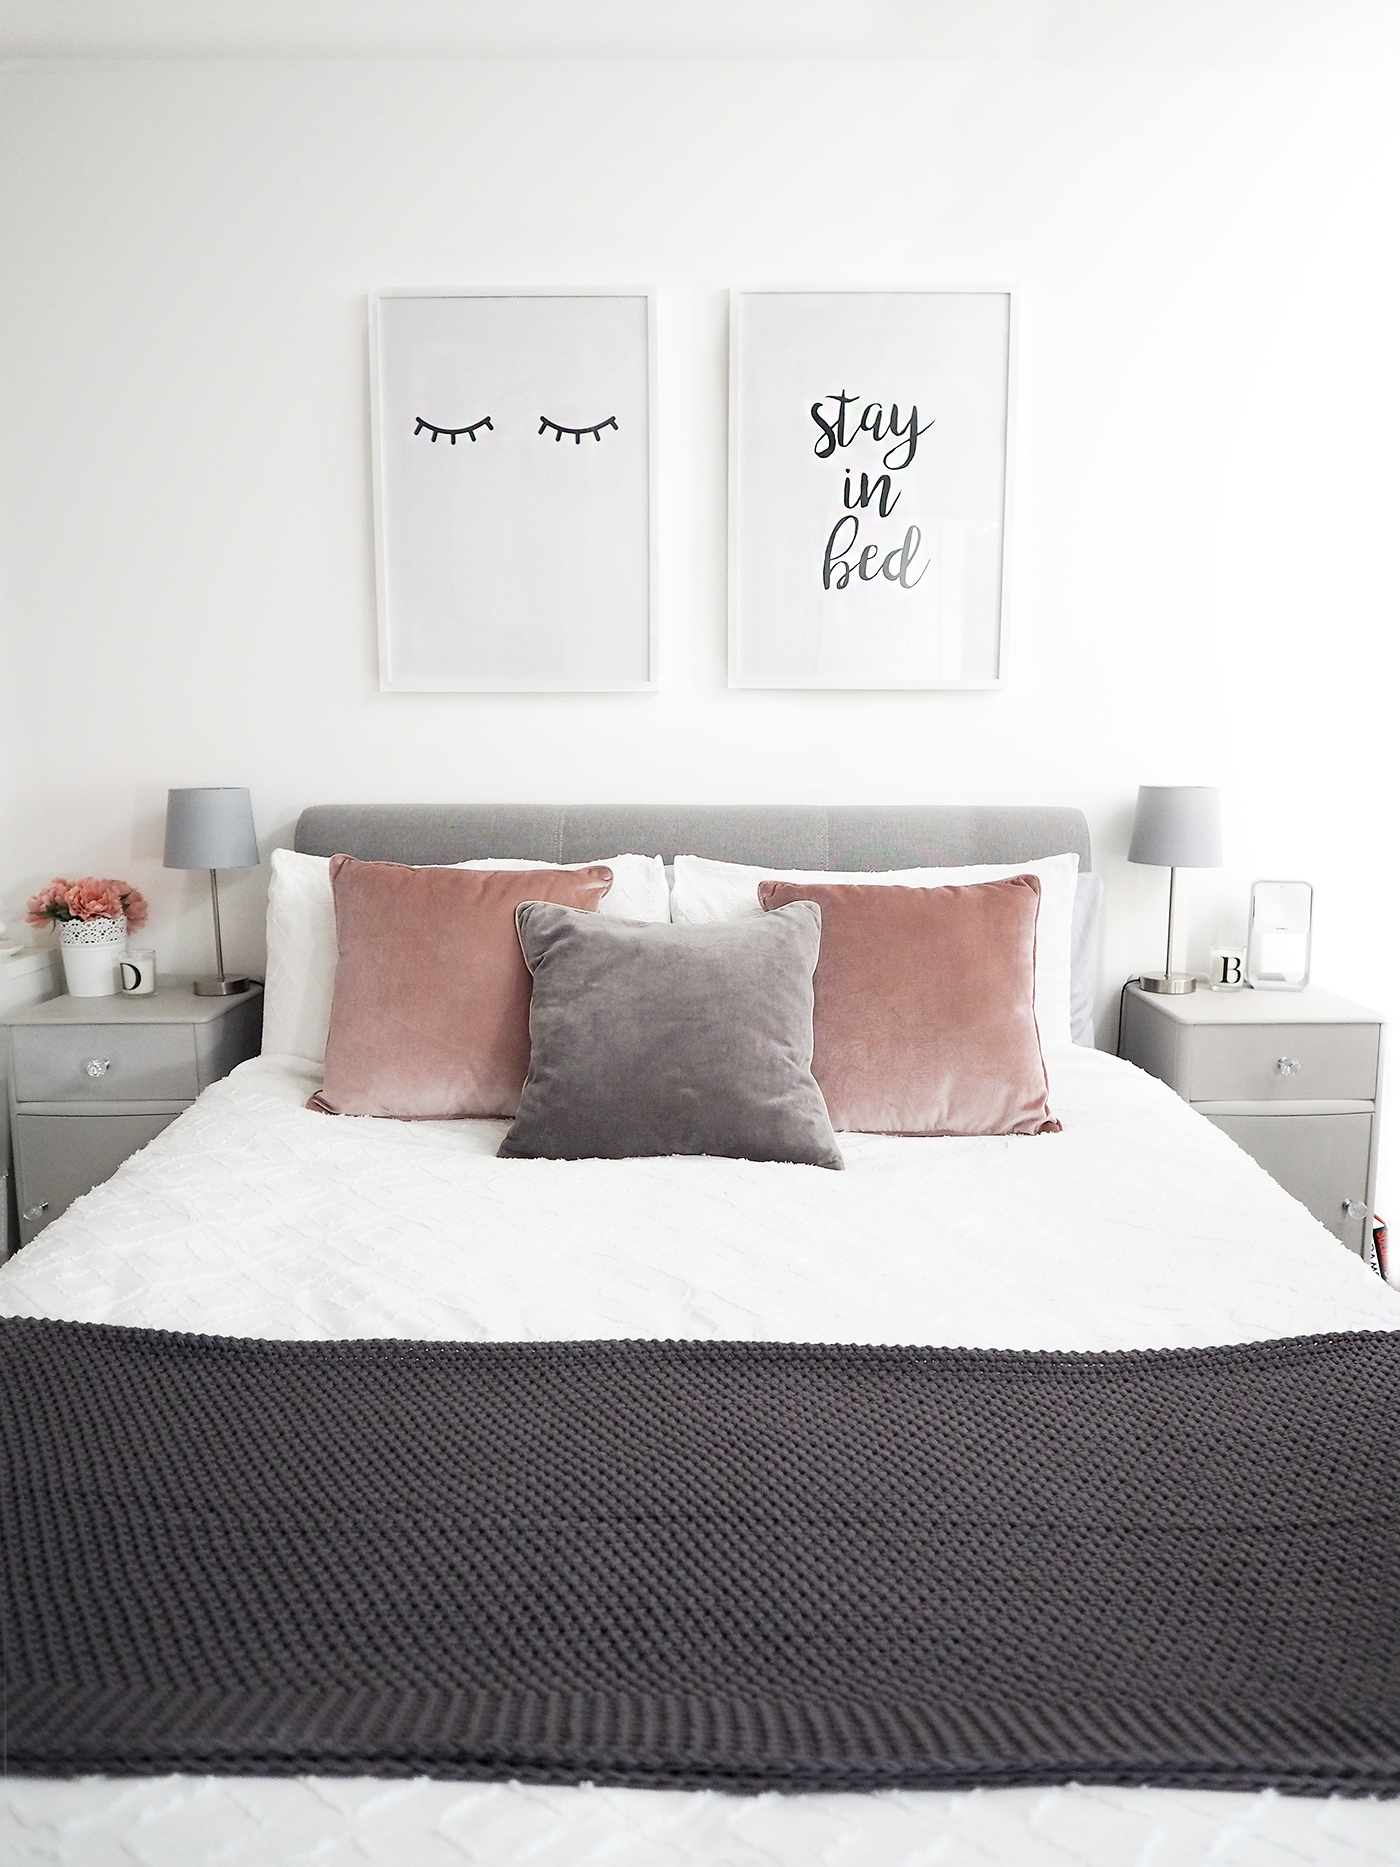 Scandi Style Bedding Bedroom Tour Pink And Grey Bedroom Decor Bang On Style